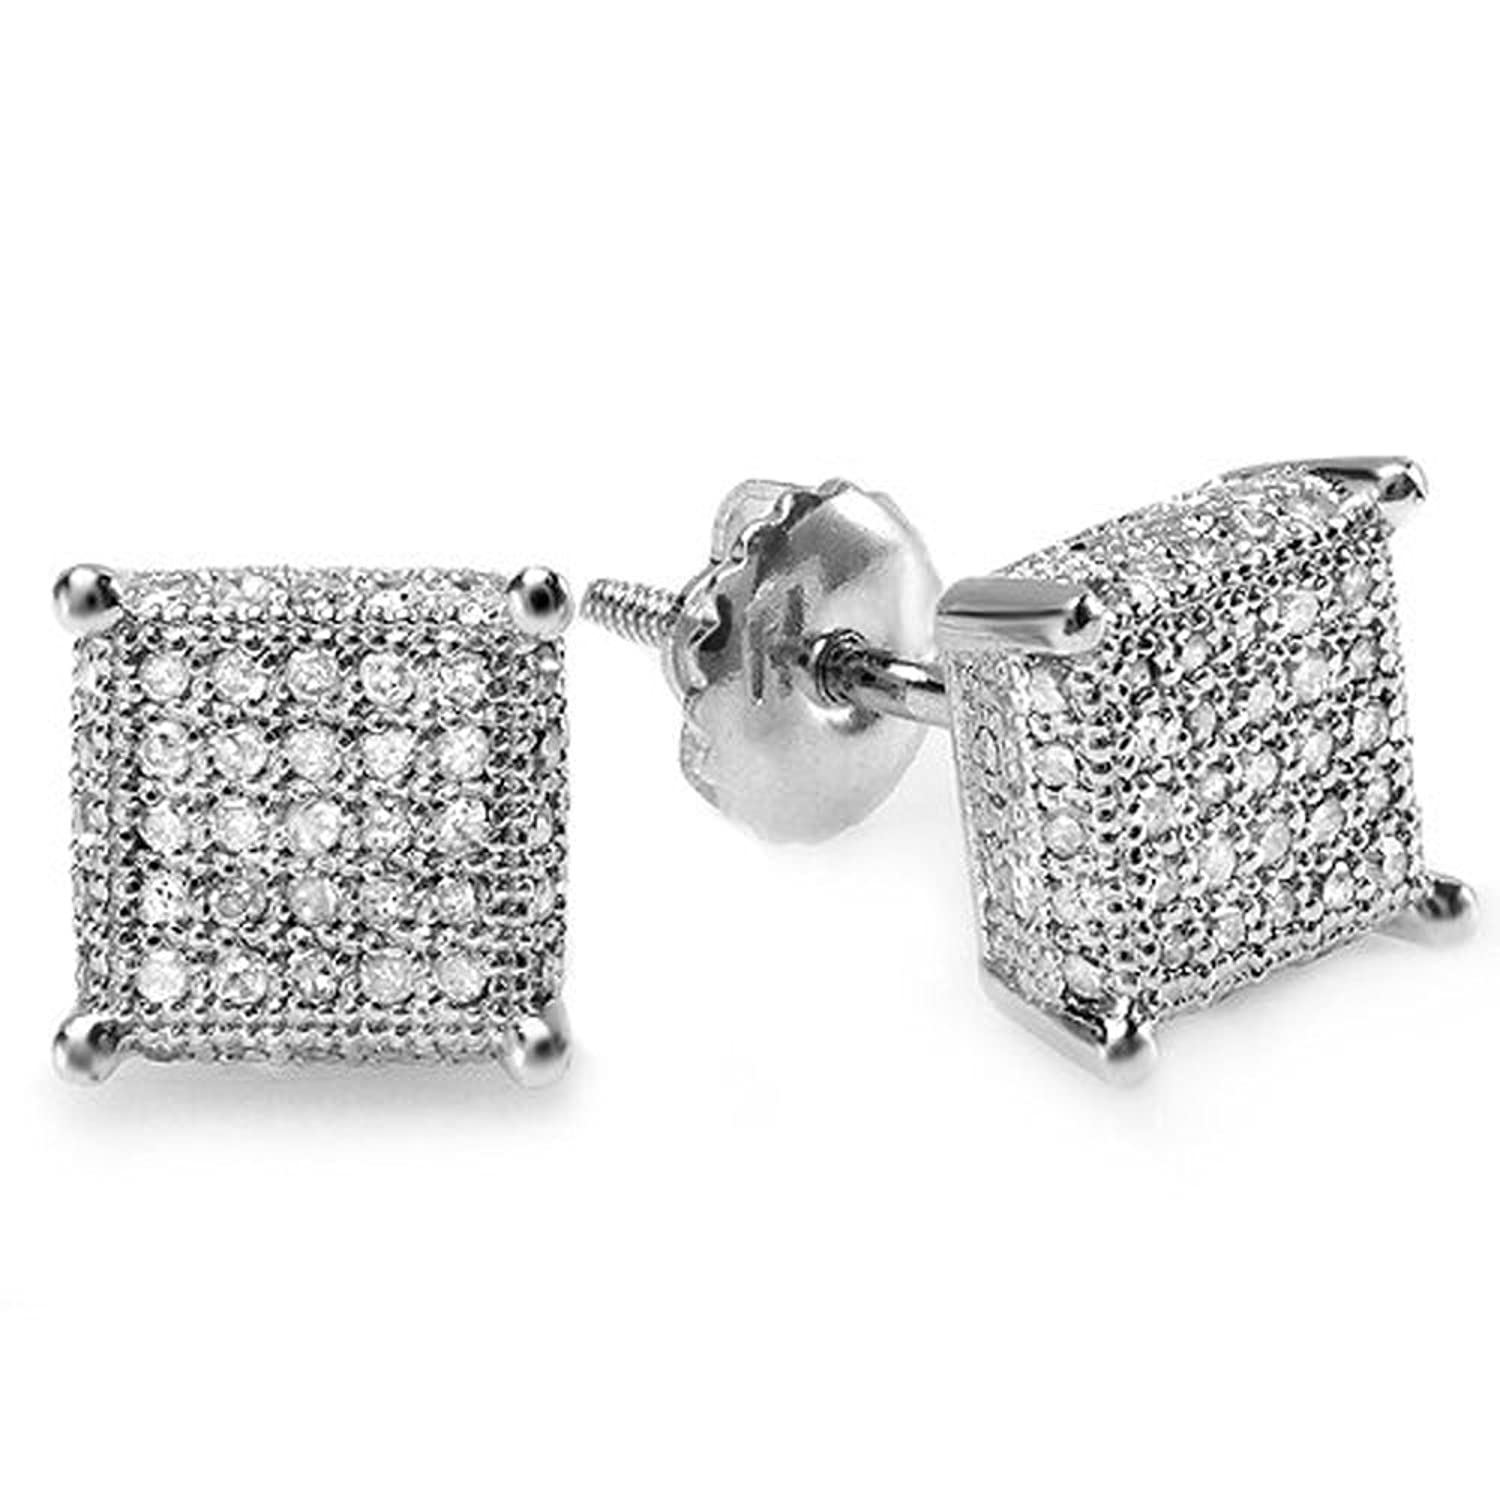 gold earring men square pave diamonds s wh mens single diamond stud